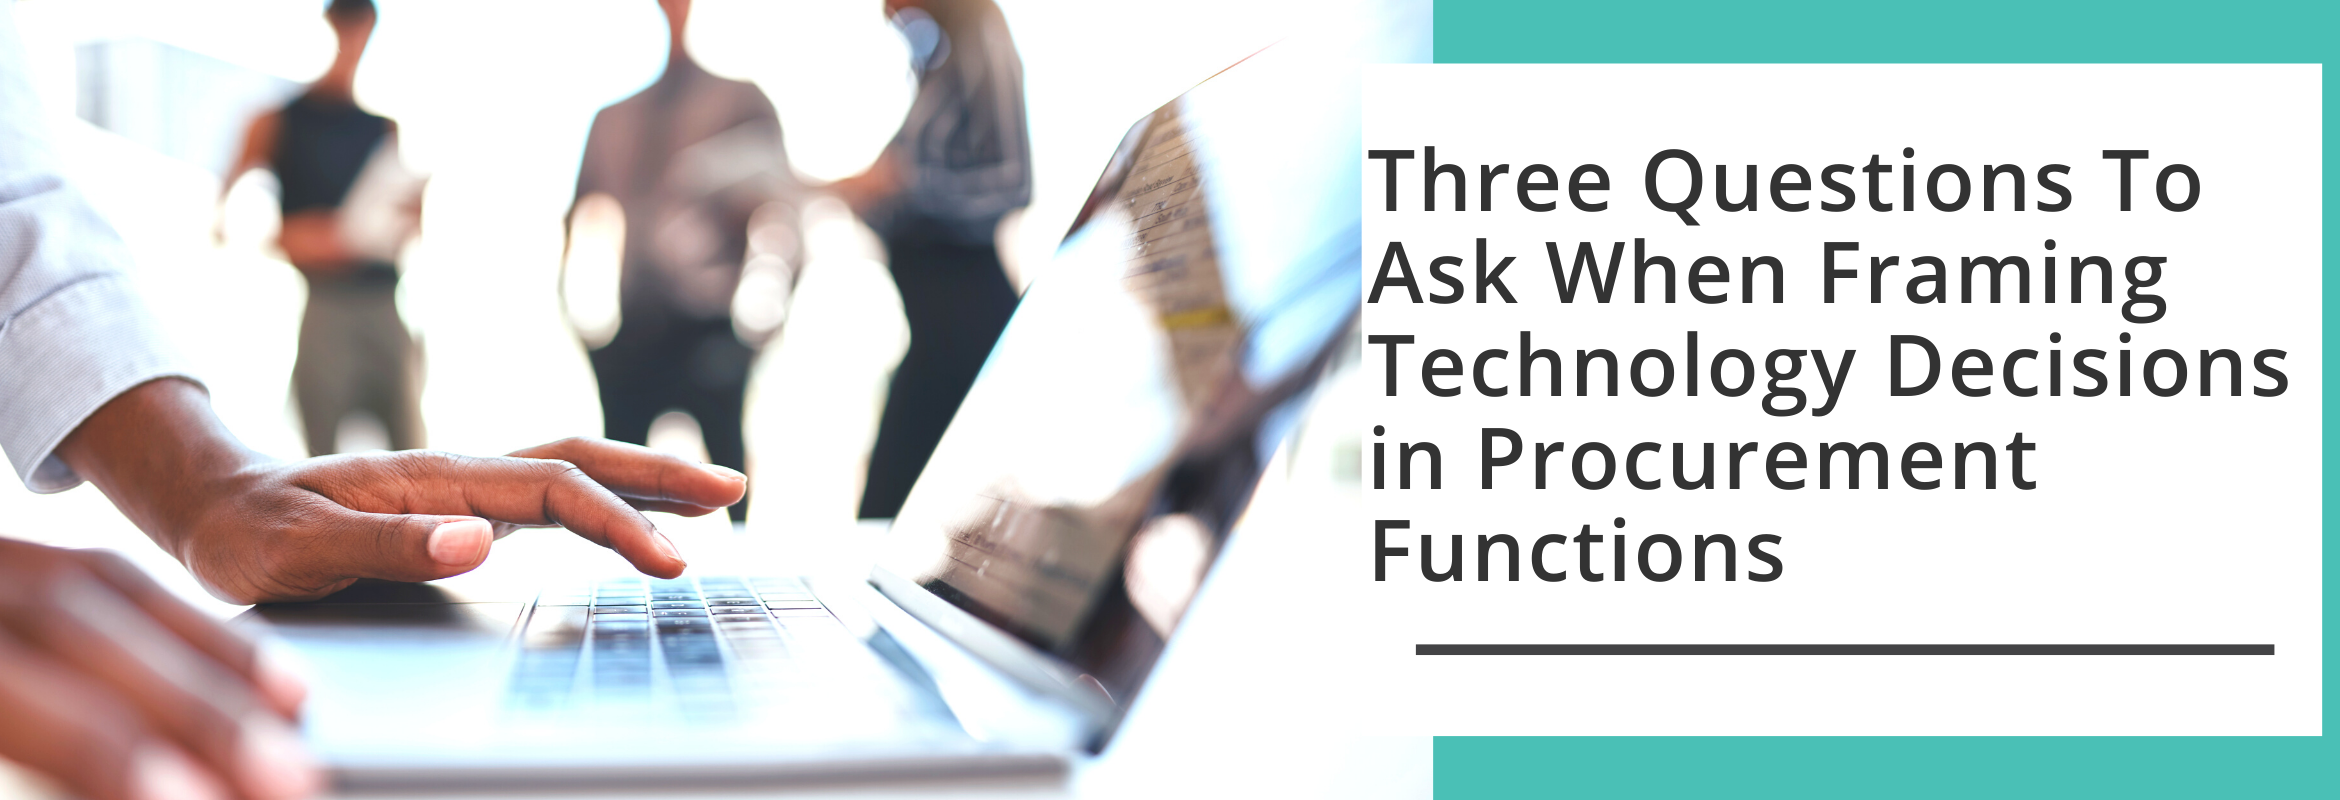 By asking three key questions, innovation, procurement and their organizations will be best-suited to choose the tools that best fit their business needs.